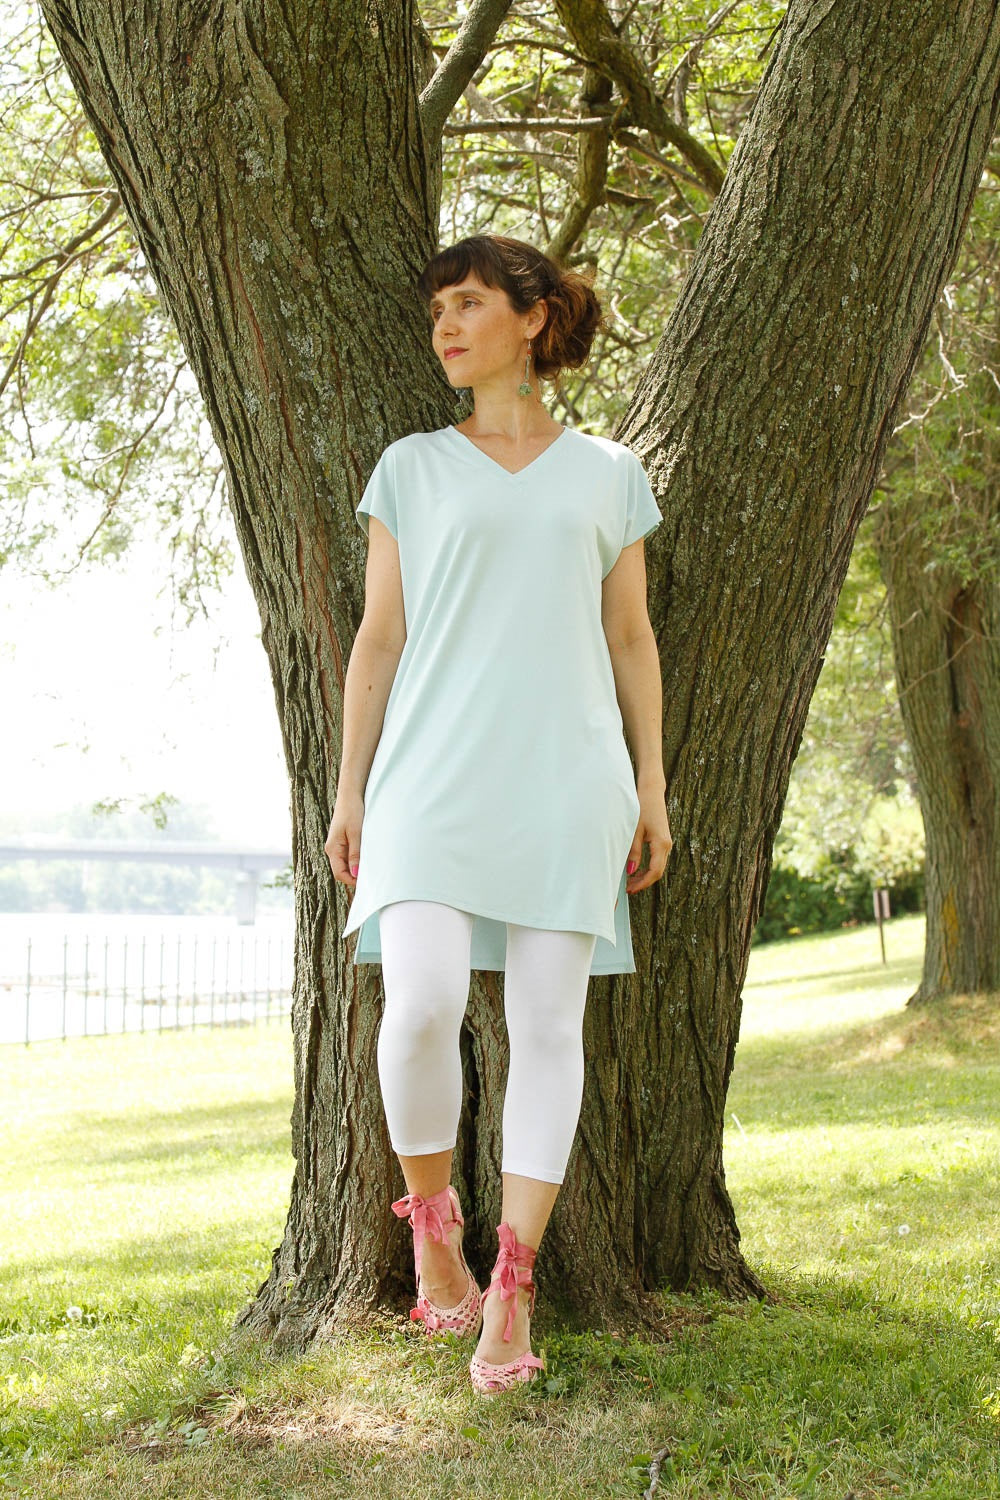 Felicity Tunic by Moovment, Avocado, V-neck, cap sleeves, side slits, colour not available